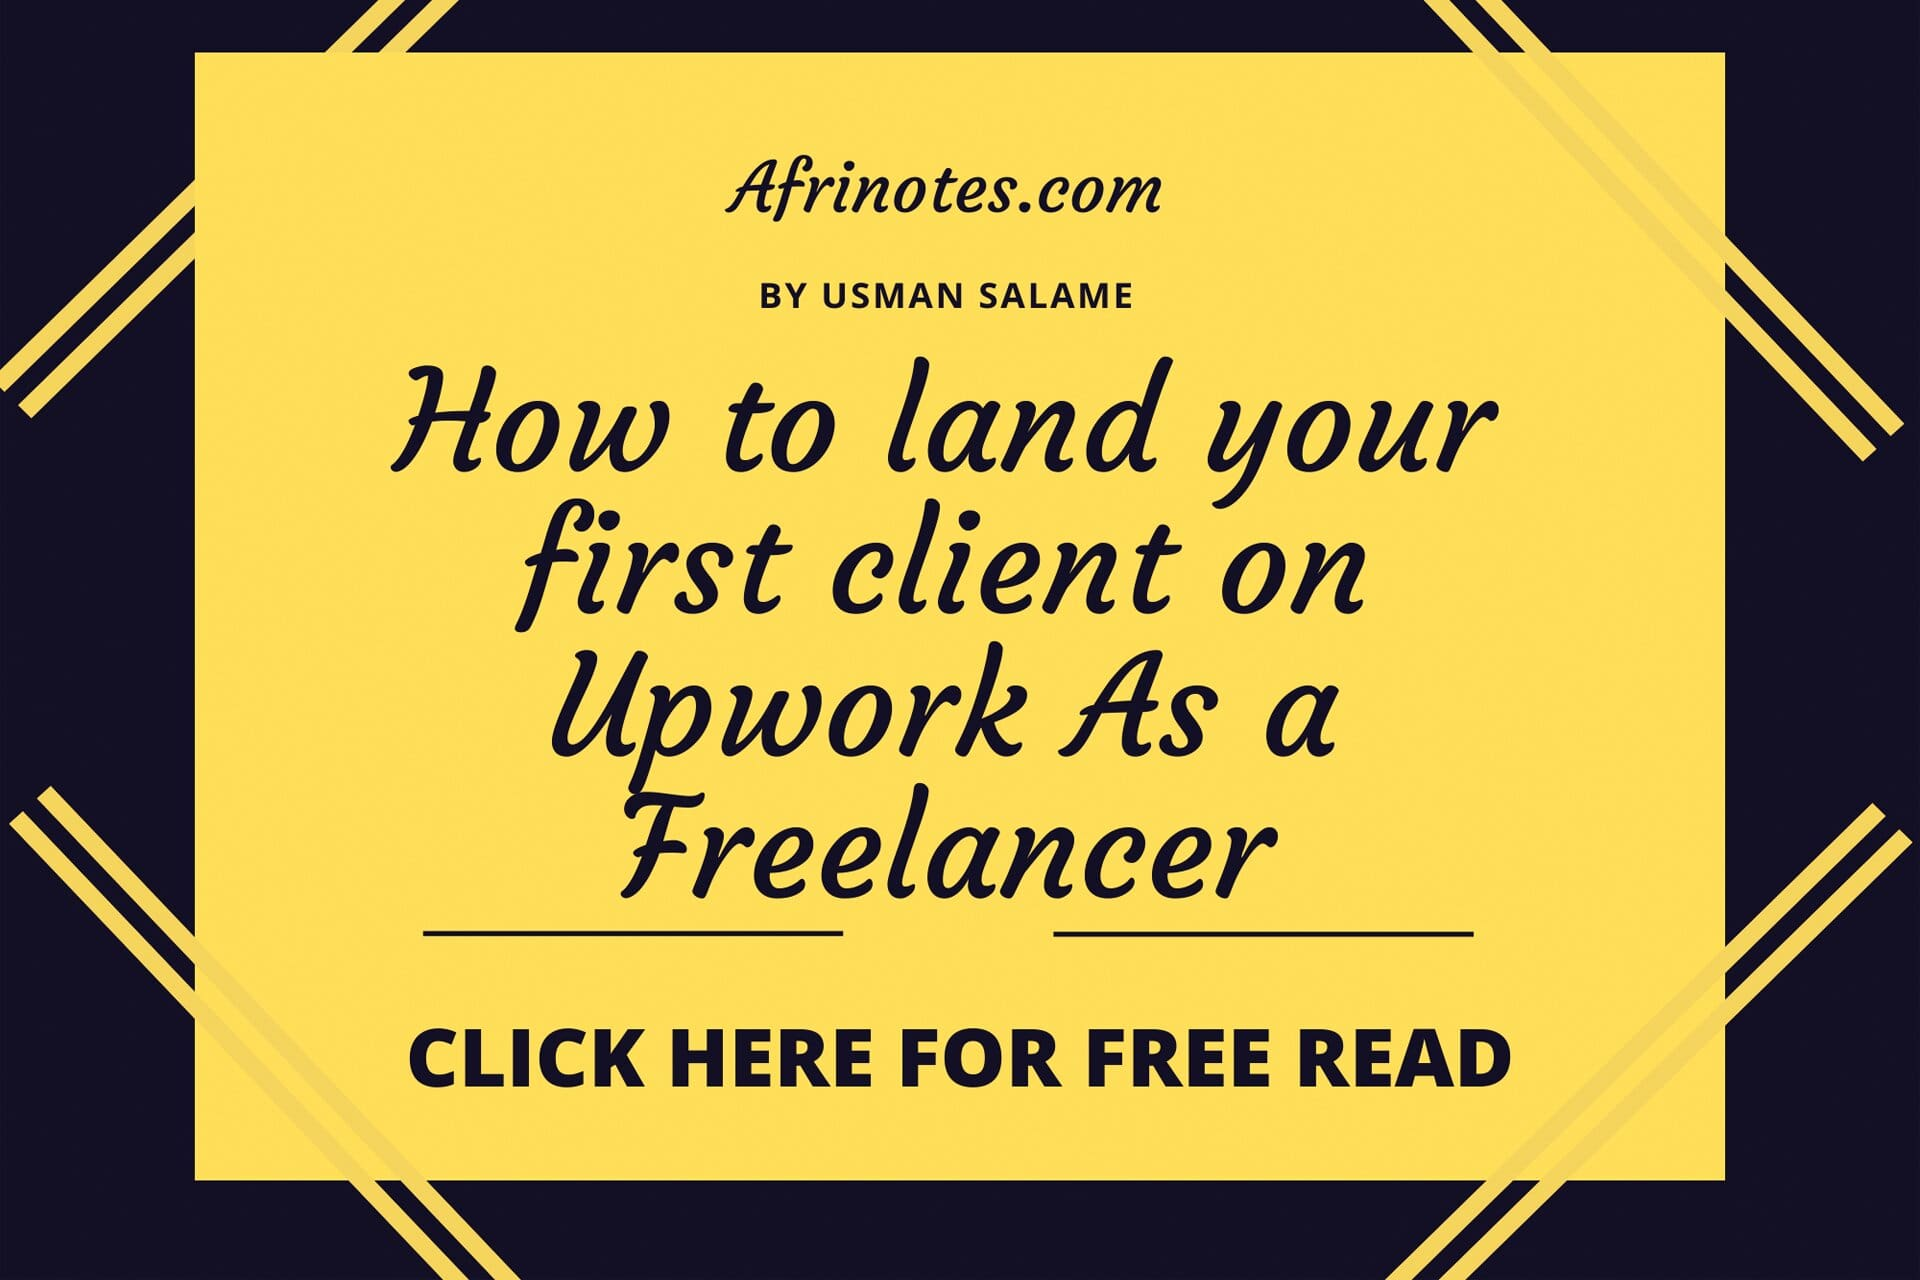 How-to-land-your-first-client-on-Upwork-As-a-Freelancer